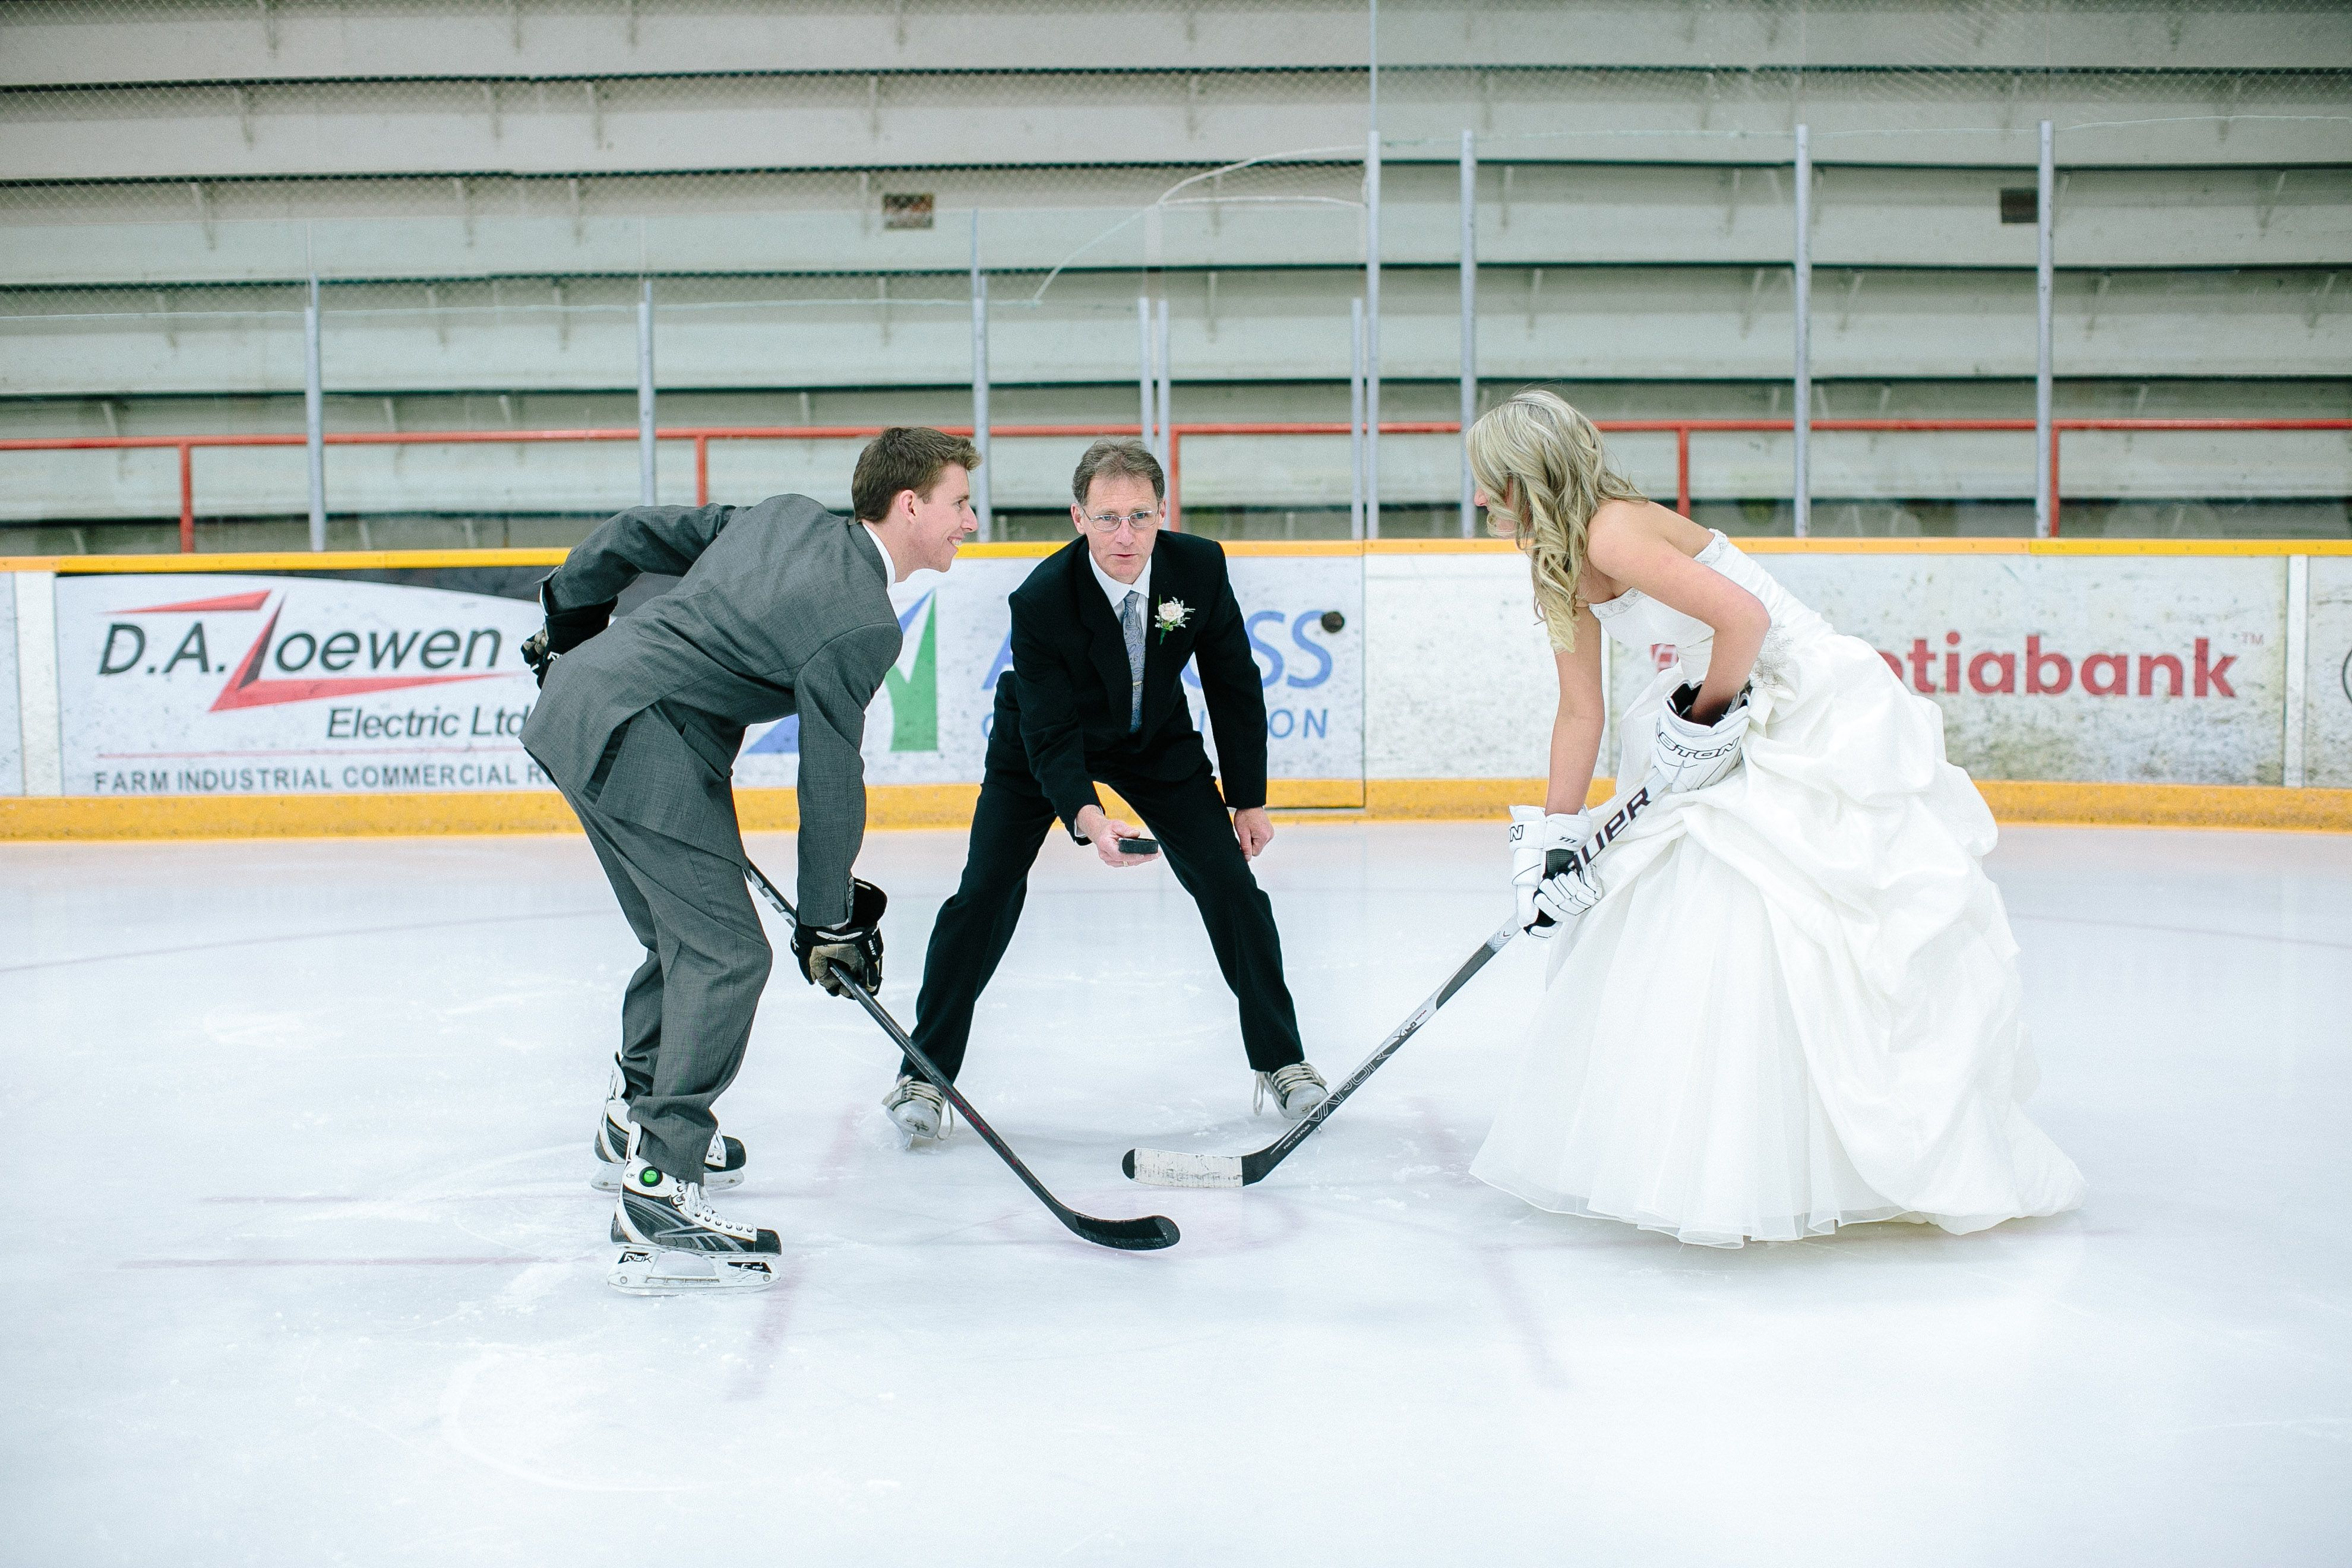 Winter Wedding Ice Hockey Bride And Groom Pinning Because He Has Great Taste In Skates And She Has G Hockey Wedding Hockey Wedding Theme Hockey Wedding Photos